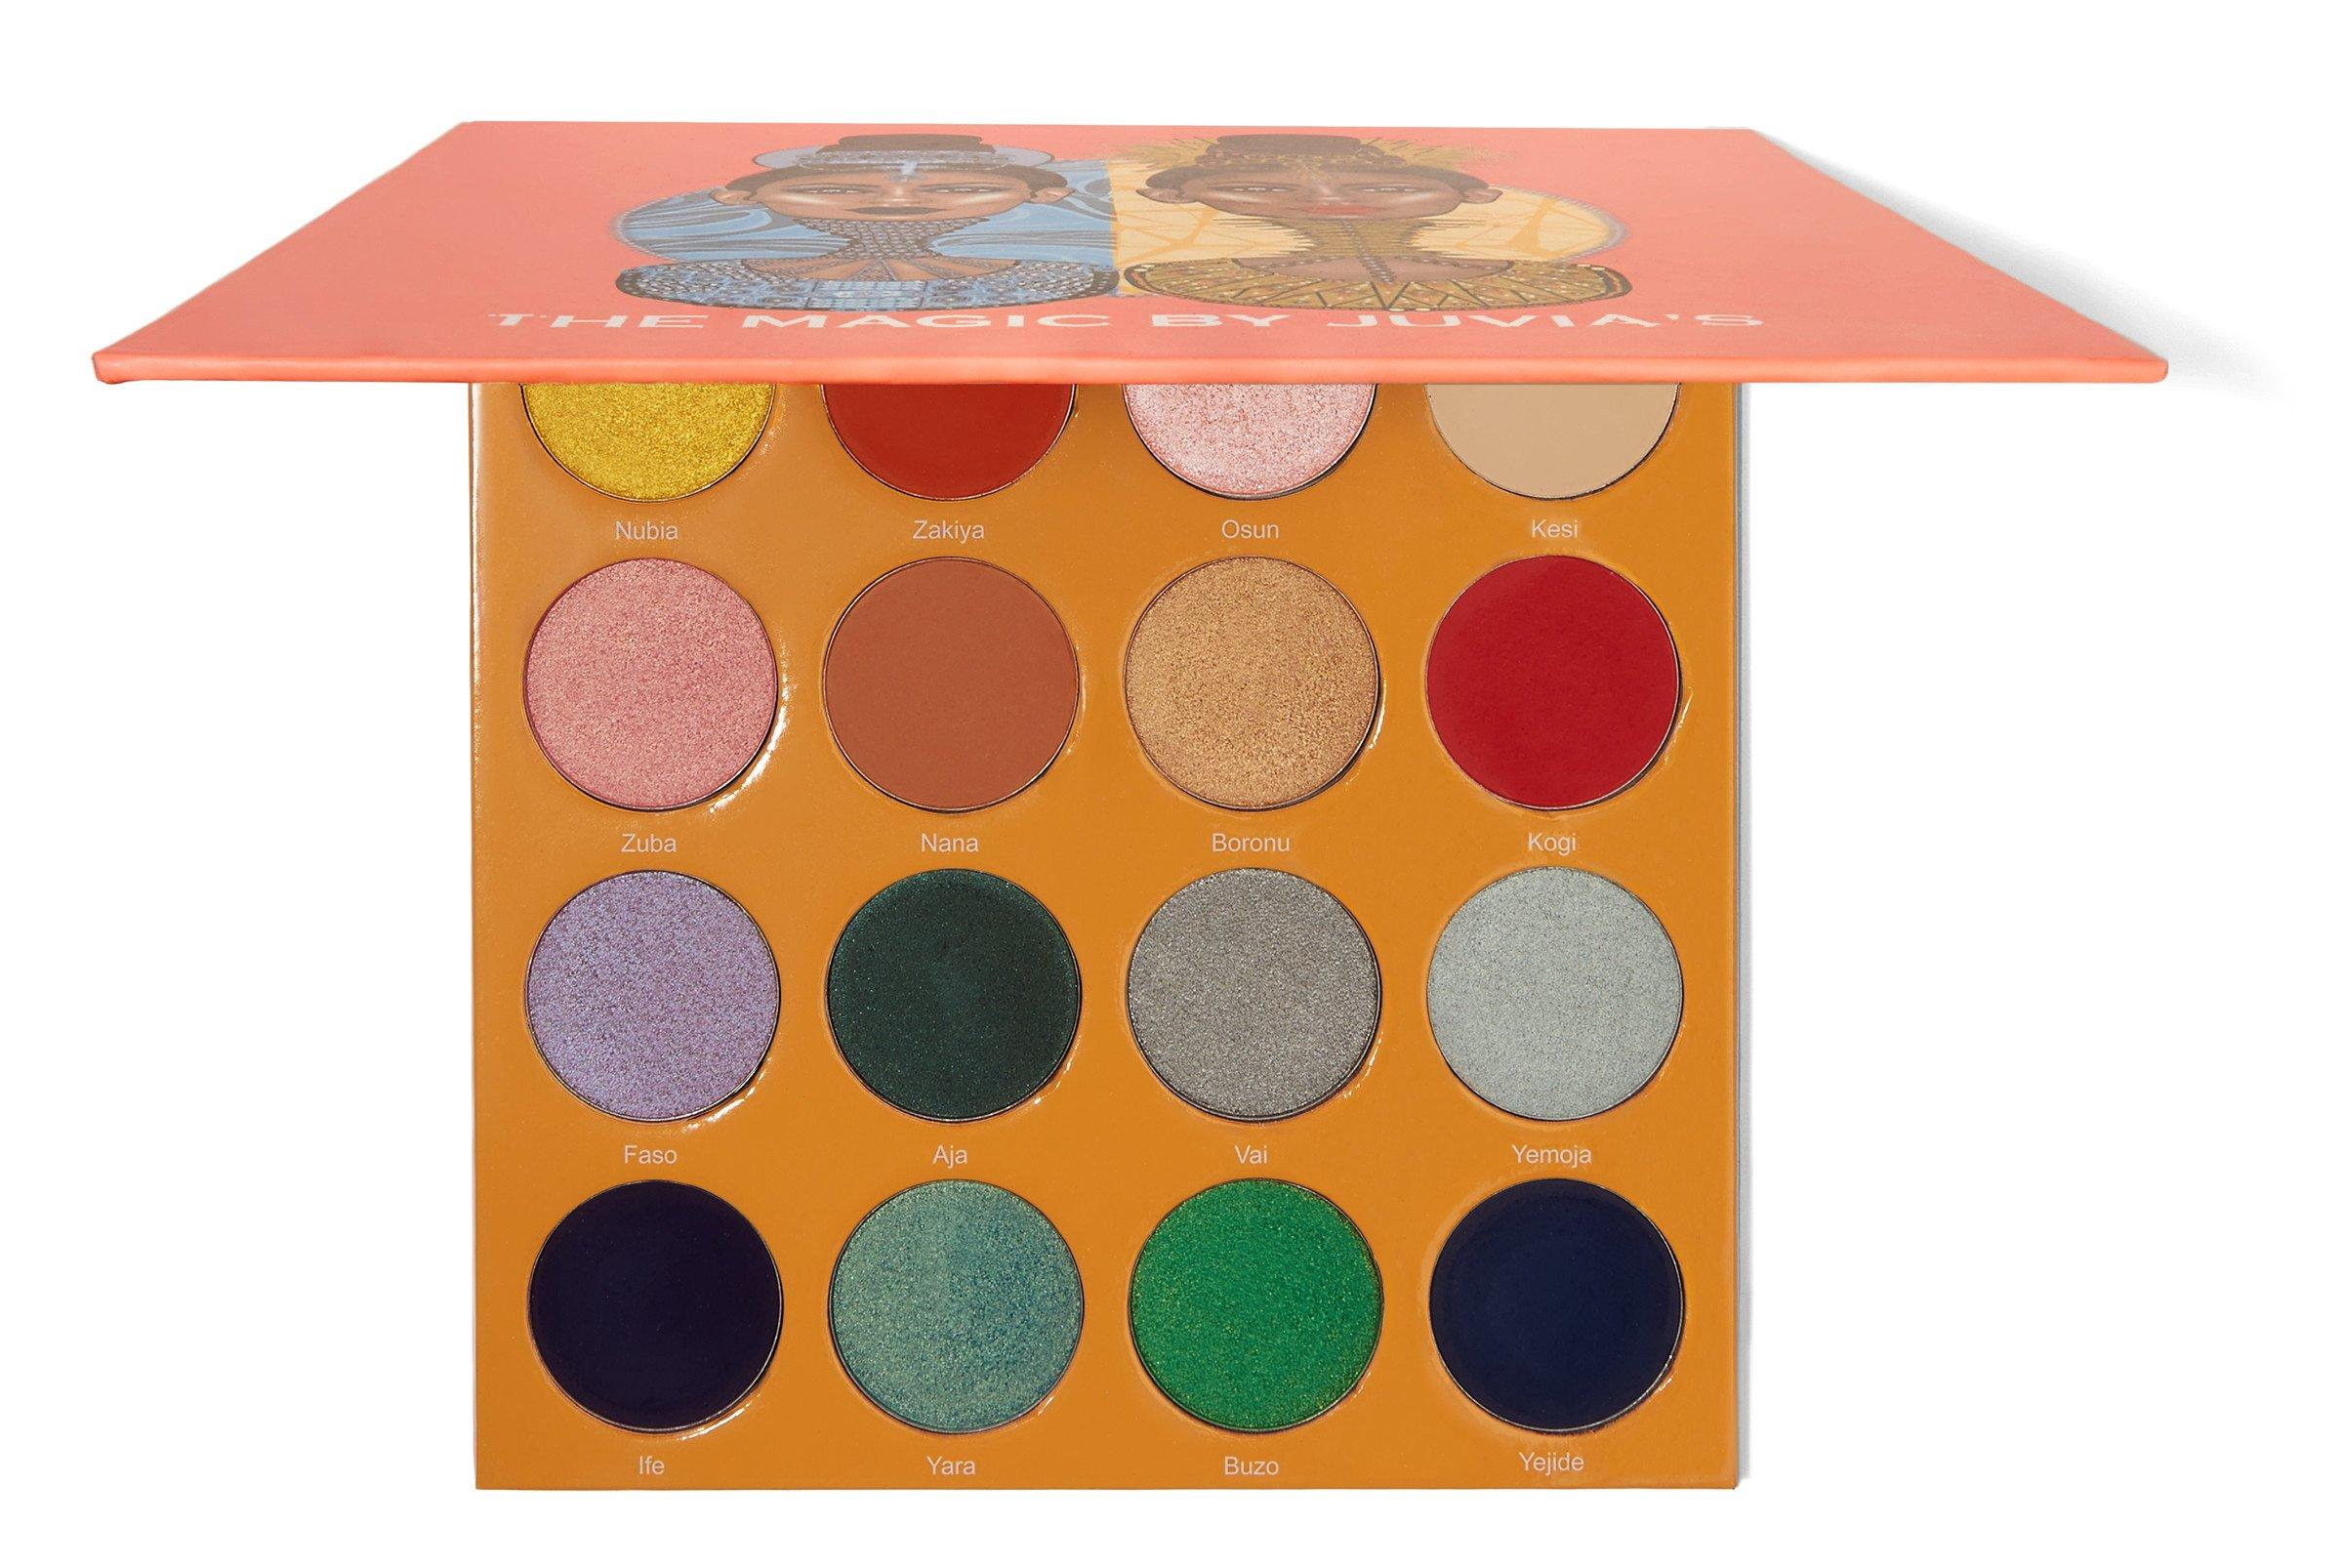 The Magic By Juvia's Eyeshadow Palette